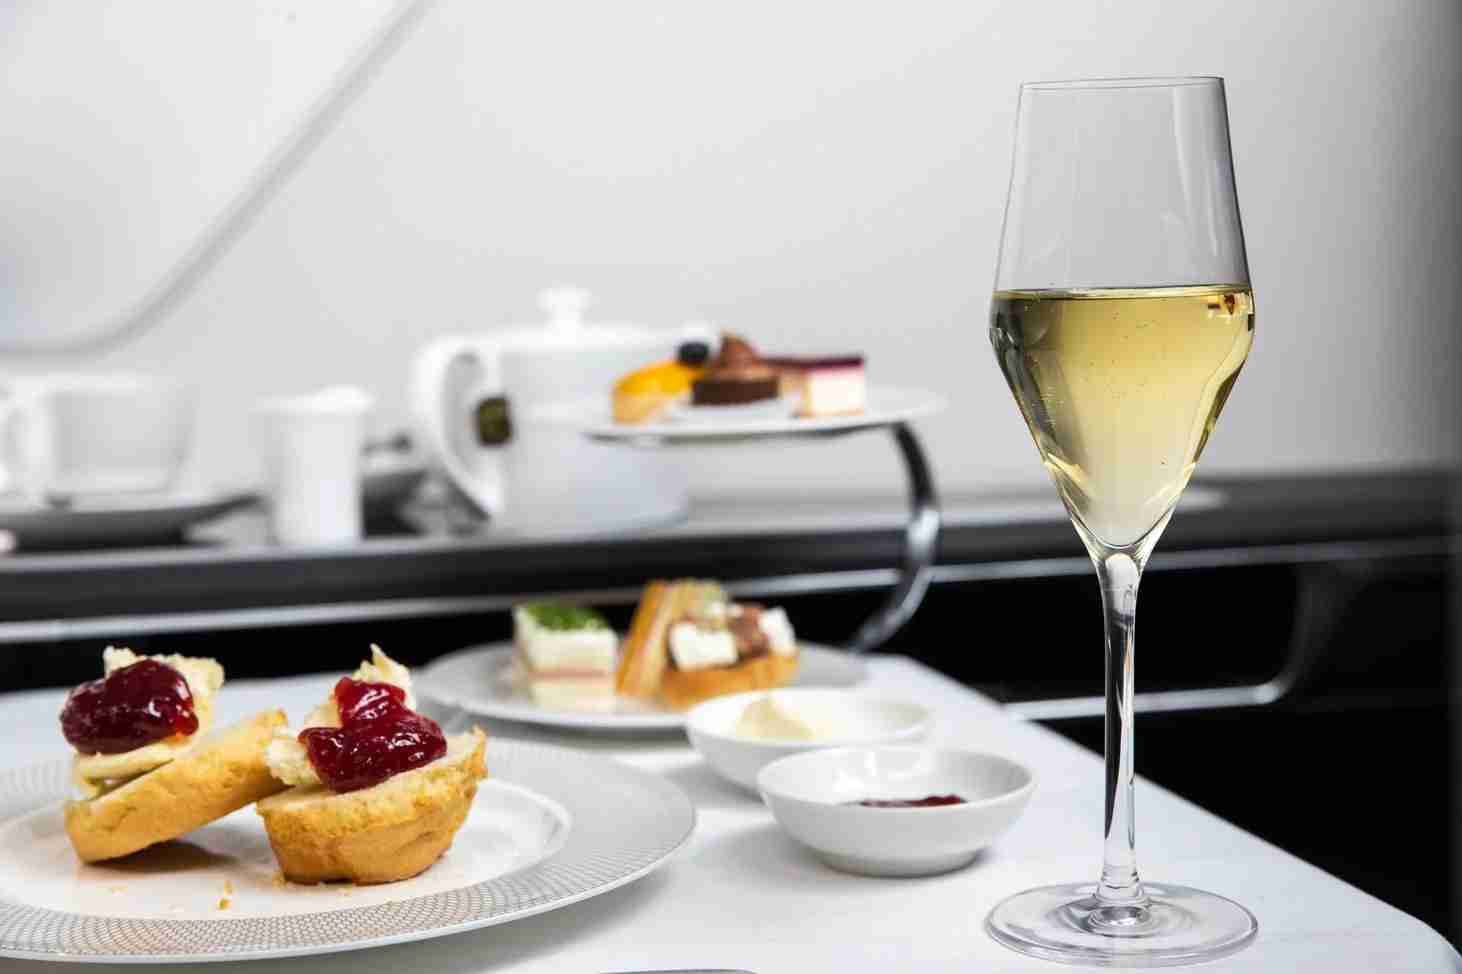 British Airways First Class Image courtesy of British Airways